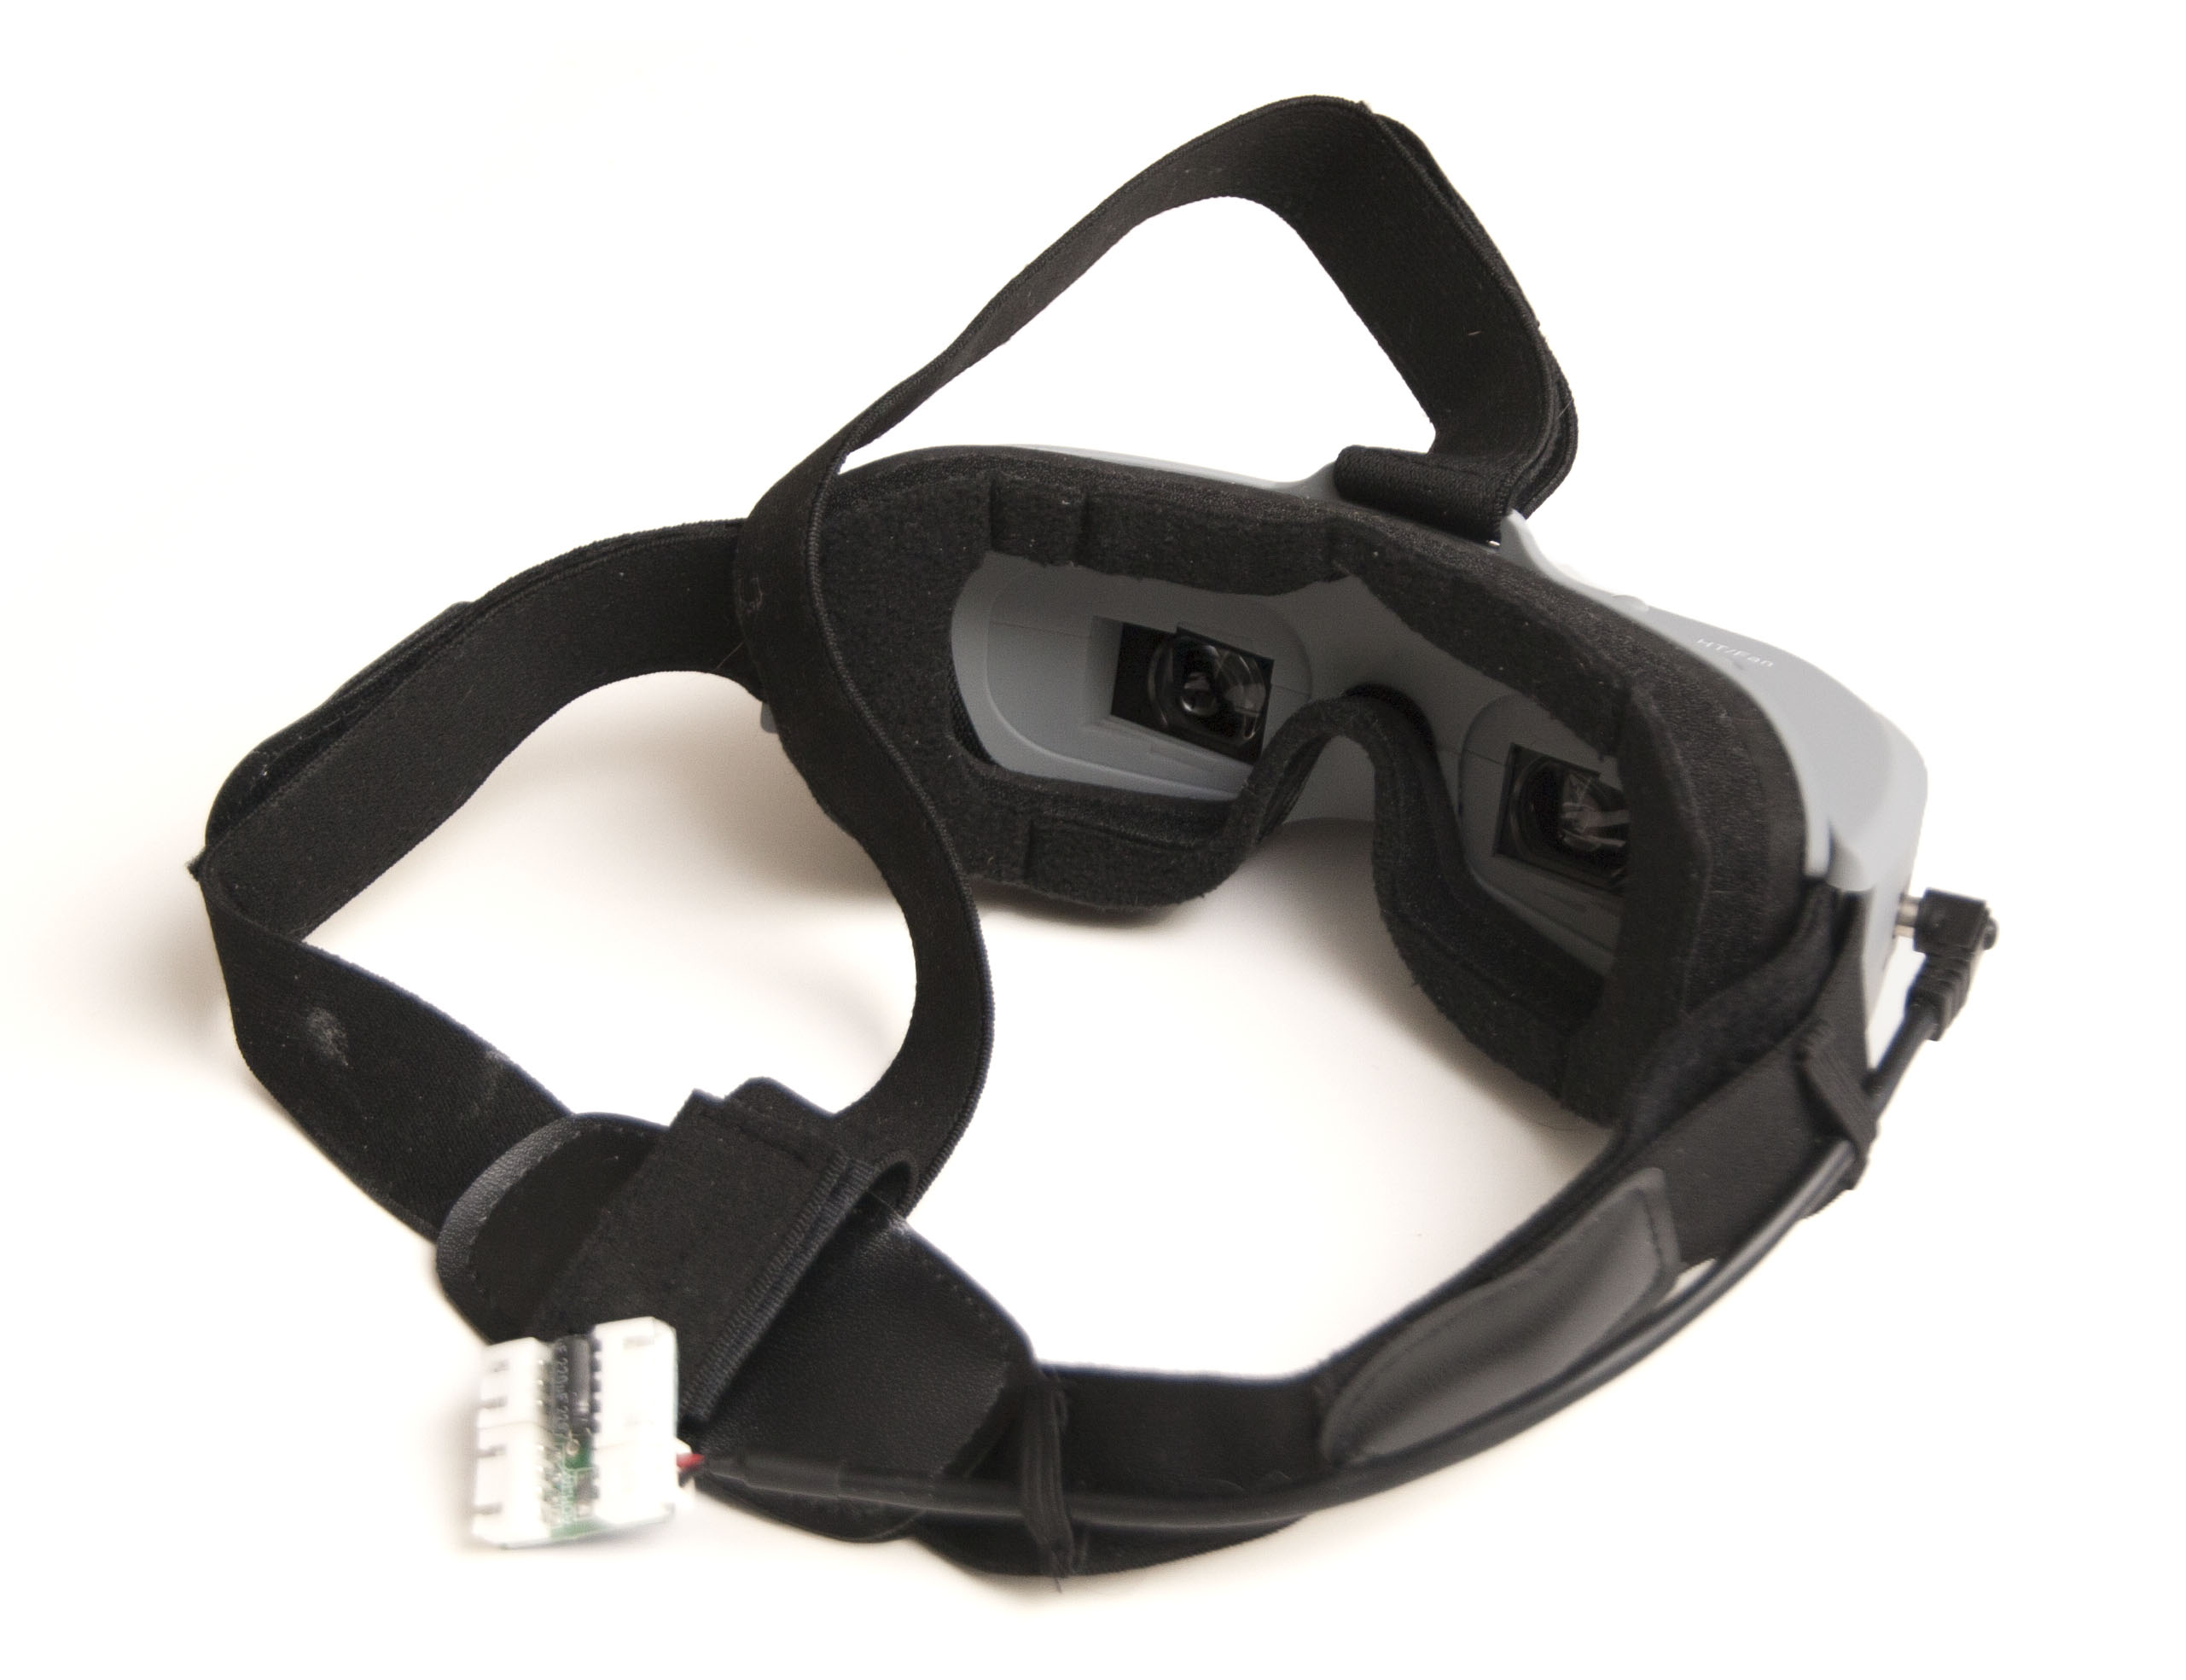 Aomway Commander V1S and V1 Video Goggles Review | Propwashed